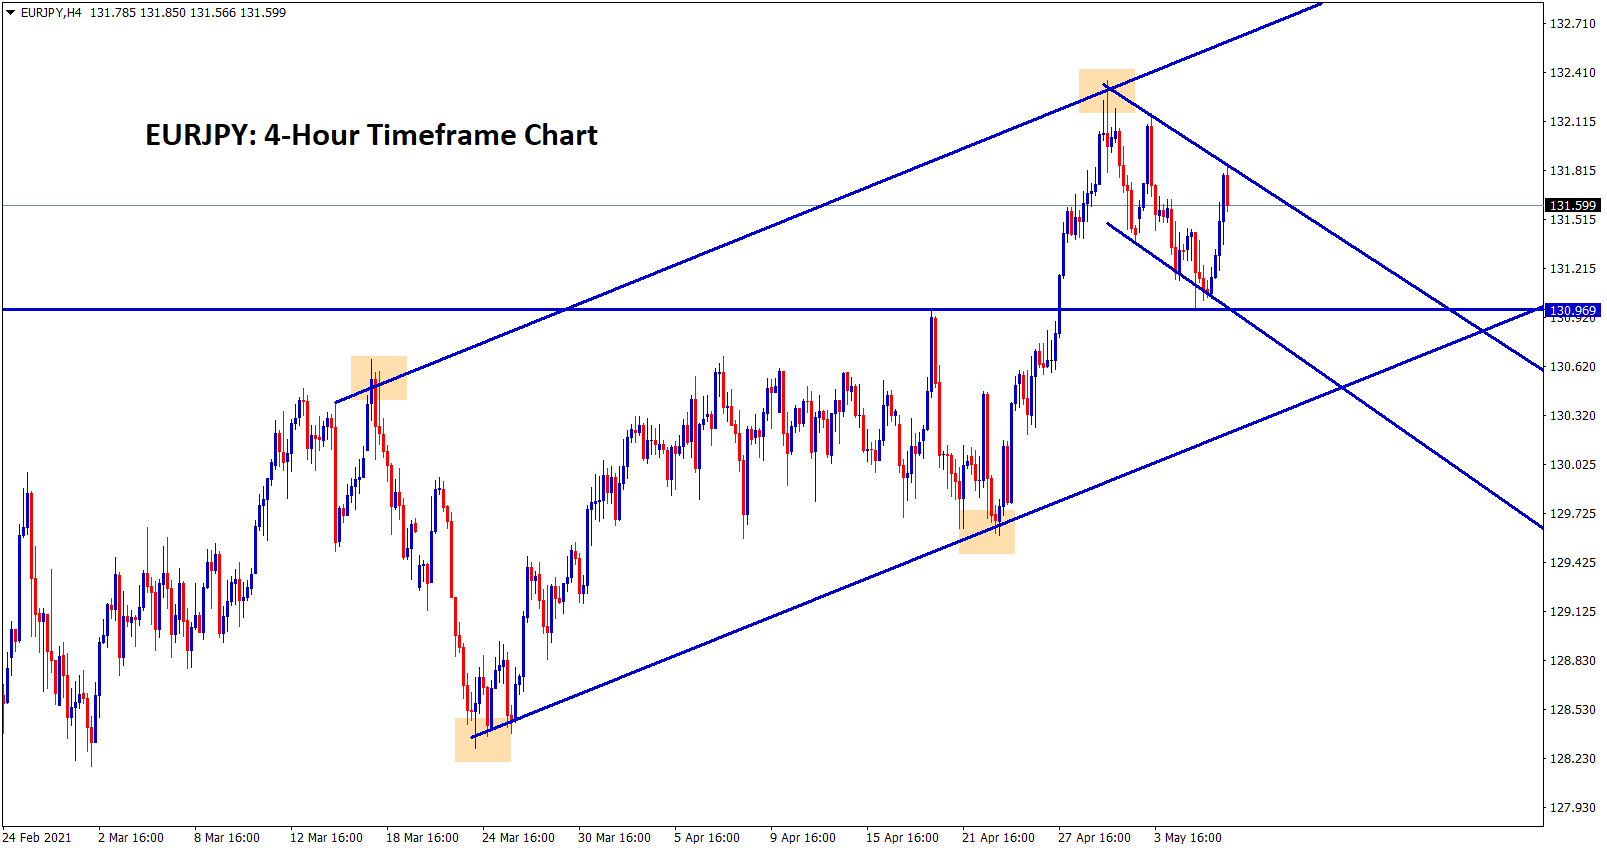 EURJPY moving between the channel ranges recently EURJPY retested the broken level previous resistance.